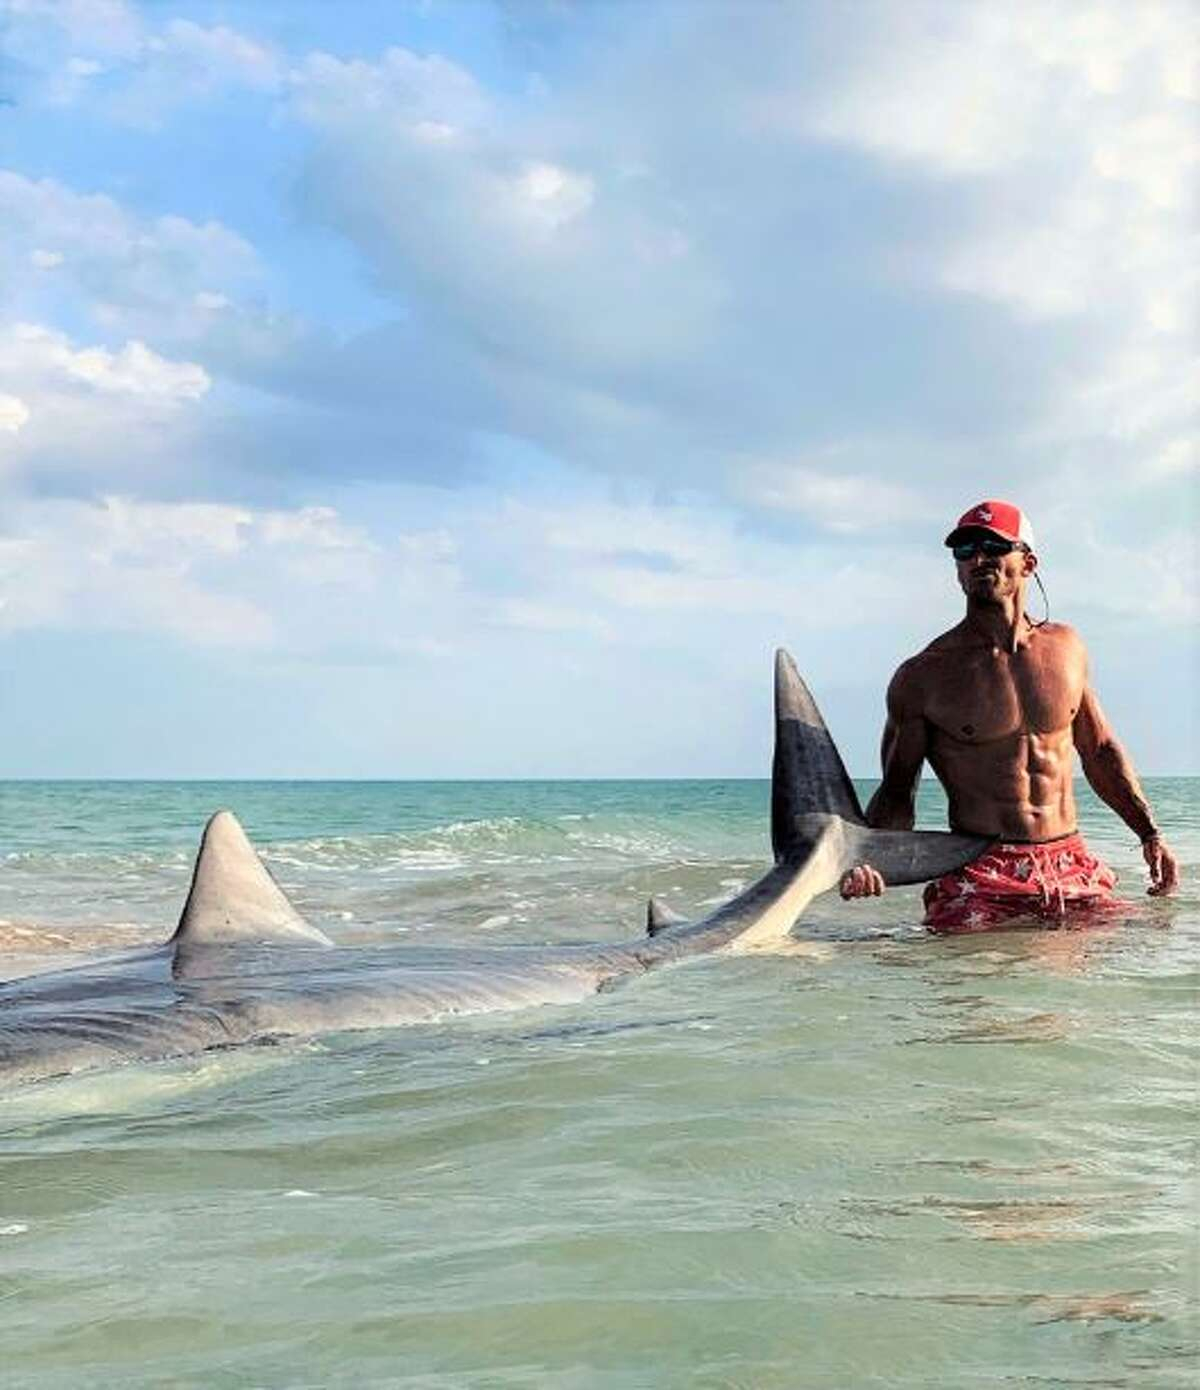 PHOTOS: Elliot Sudal had been fishing for more than a day when he landed a tiger shark off the Gulf Coast early last week. See photos of the massive tiger shark ...